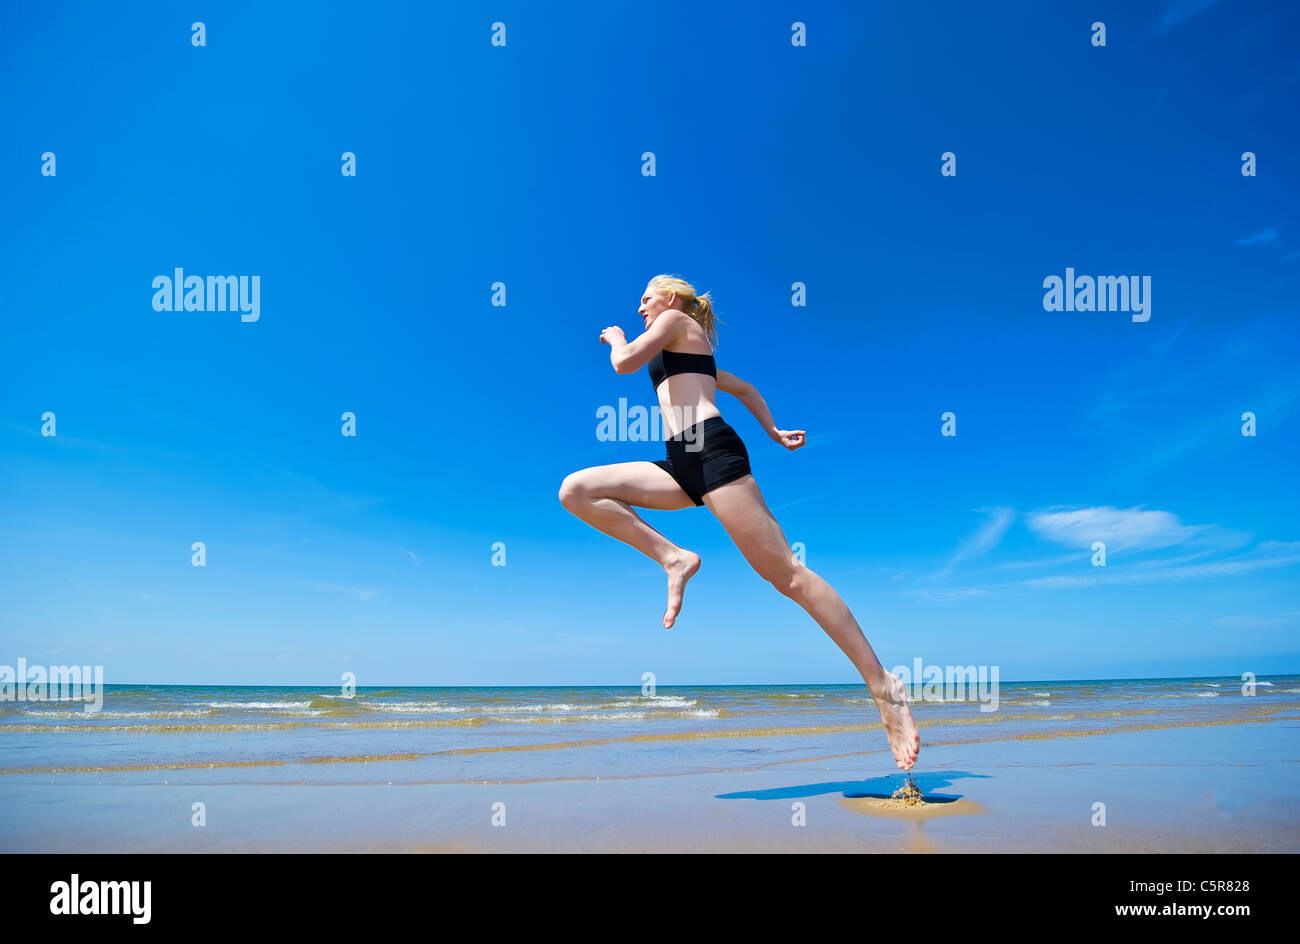 An jogger running along a beach - Stock Image